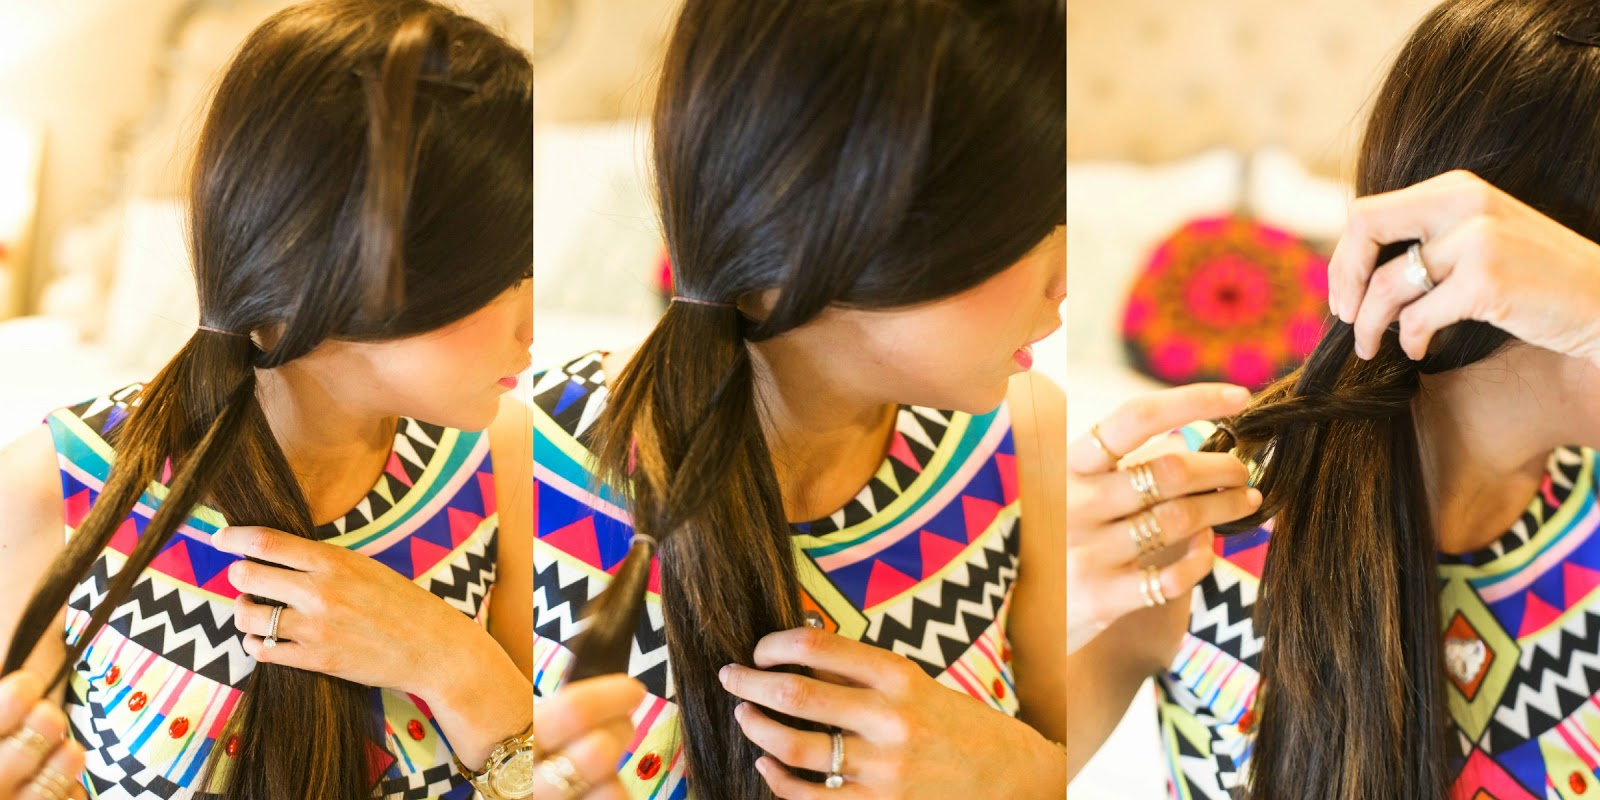 These 3 Images Show Exactly What You'll Do The Rest Of The Way Down Tie  The Braid With A Small Rubber Band